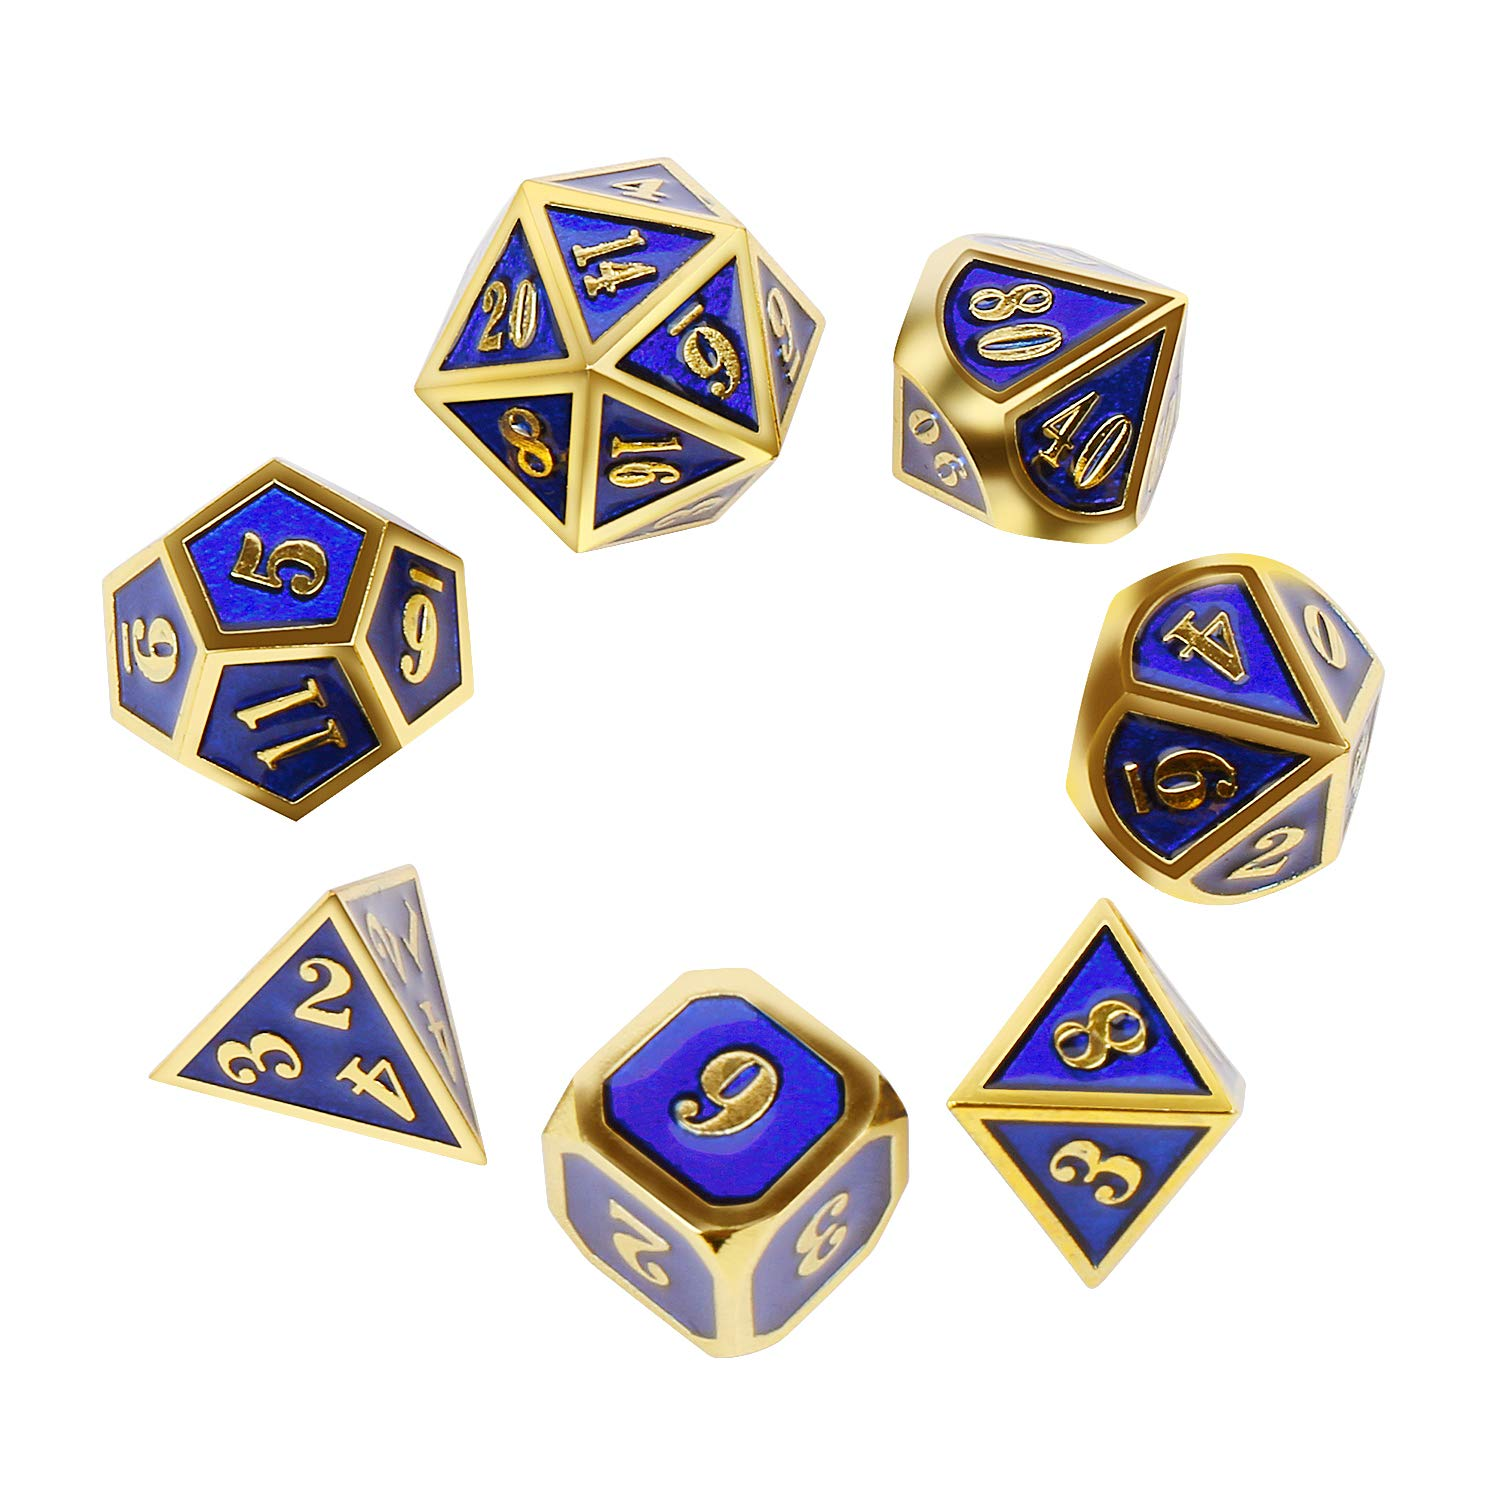 Metal Dice Set Polyhedral DND Role Playing Game Dice Set with Storage Bag for RPG Dungeons and Dragons D&D Math Teaching Tabletop Games (Shiny Gold and Blue) by Stylifing